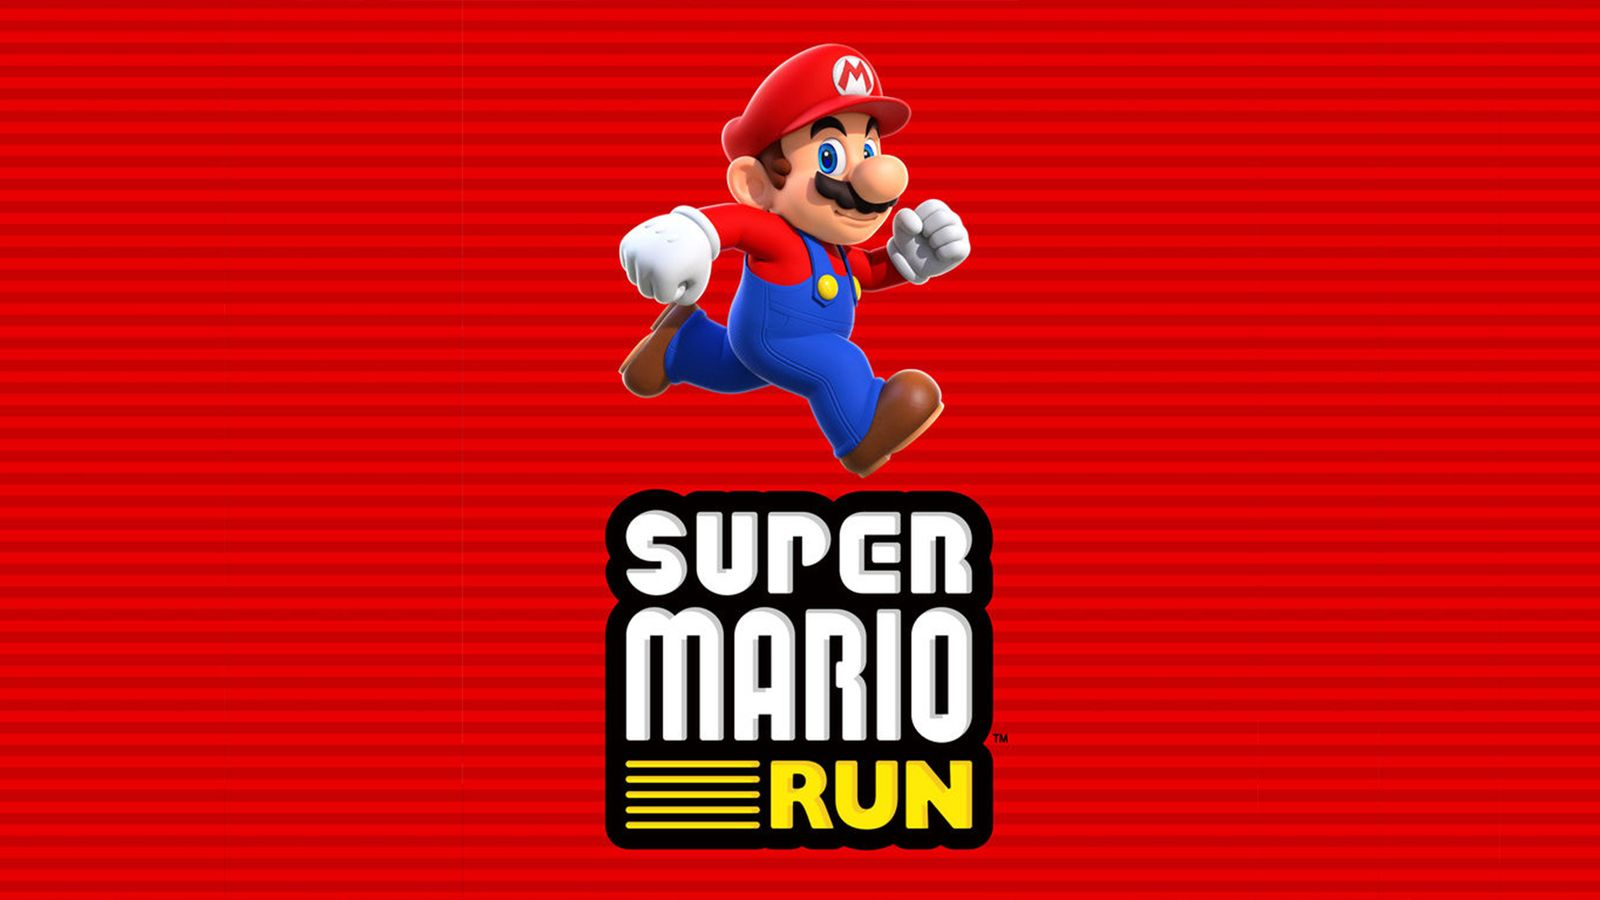 Super Mario Run version 3.0.14 on the way, dropping support for Android OS lower than 4.4